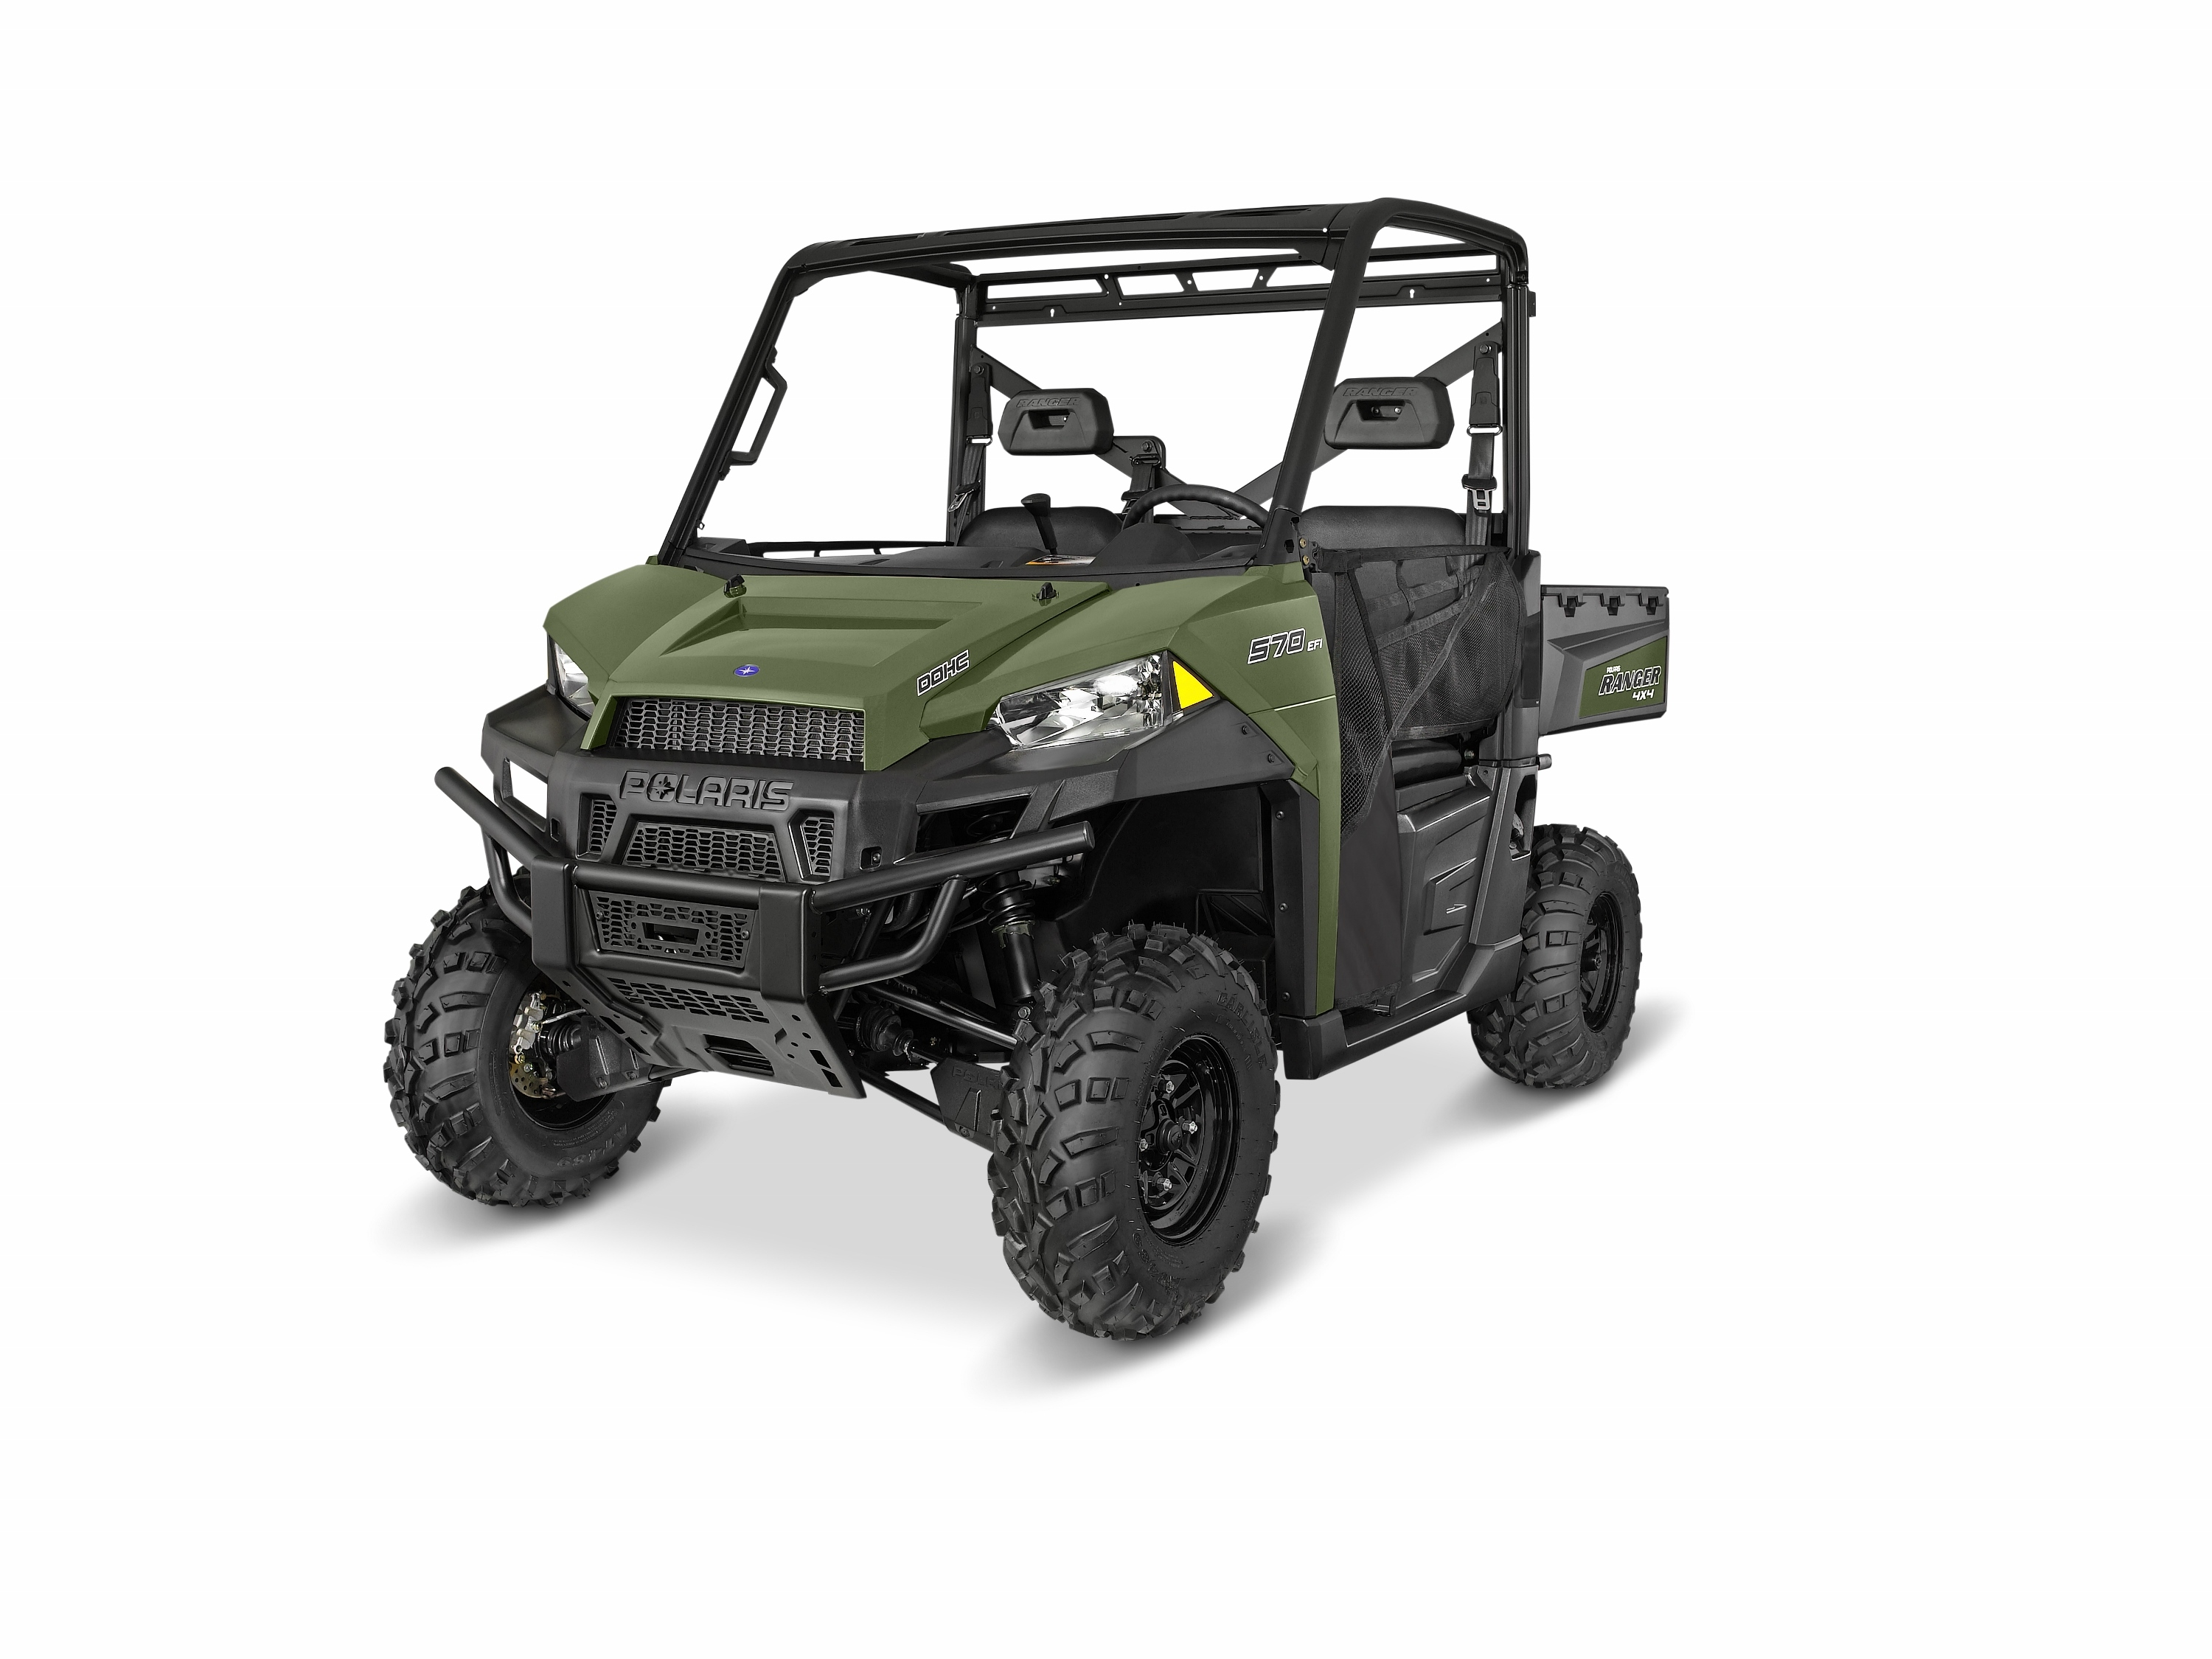 The RANGER 570 Full-Size is among the newest additions to the RANGER XP platform. (Photo: Polaris Industries)